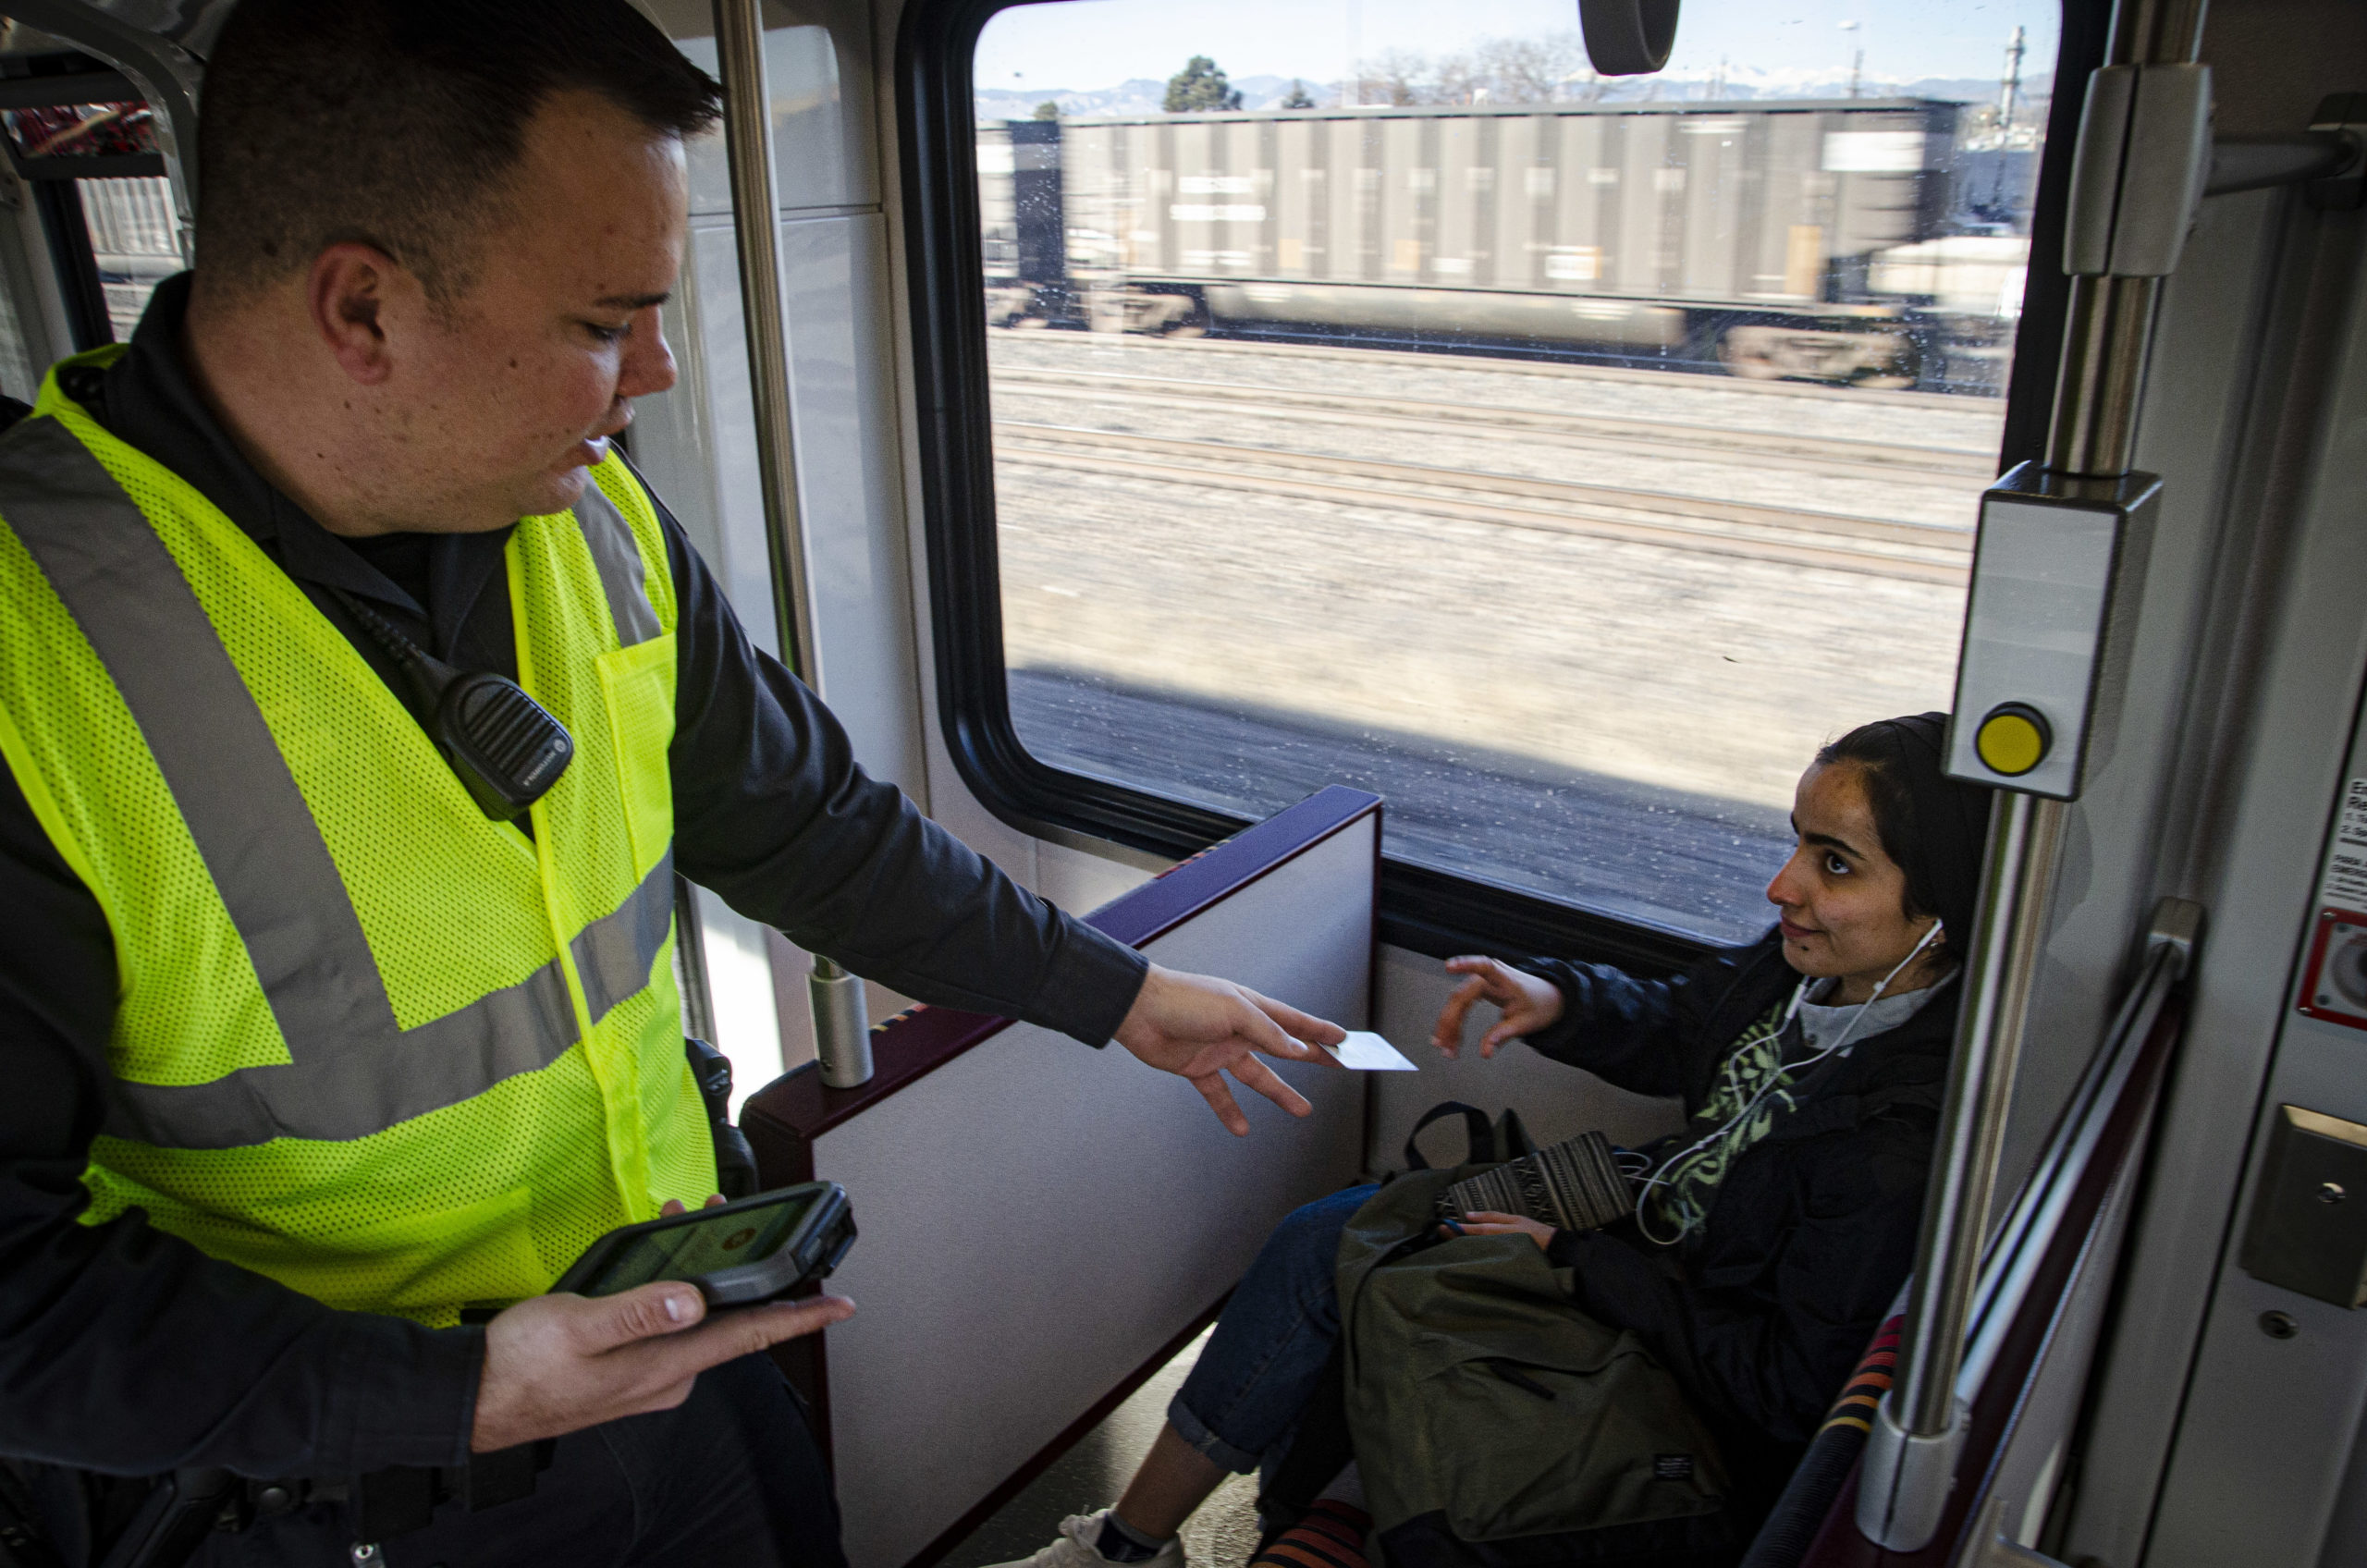 Jesse Balderrama, a security officer with Allied Security, an RTD contractor, hands a fare card back to passenger Afaf Al-Johani, a student at the University of Denver, on an RTD light rail train Wednesday, Jan. 15, 2019.